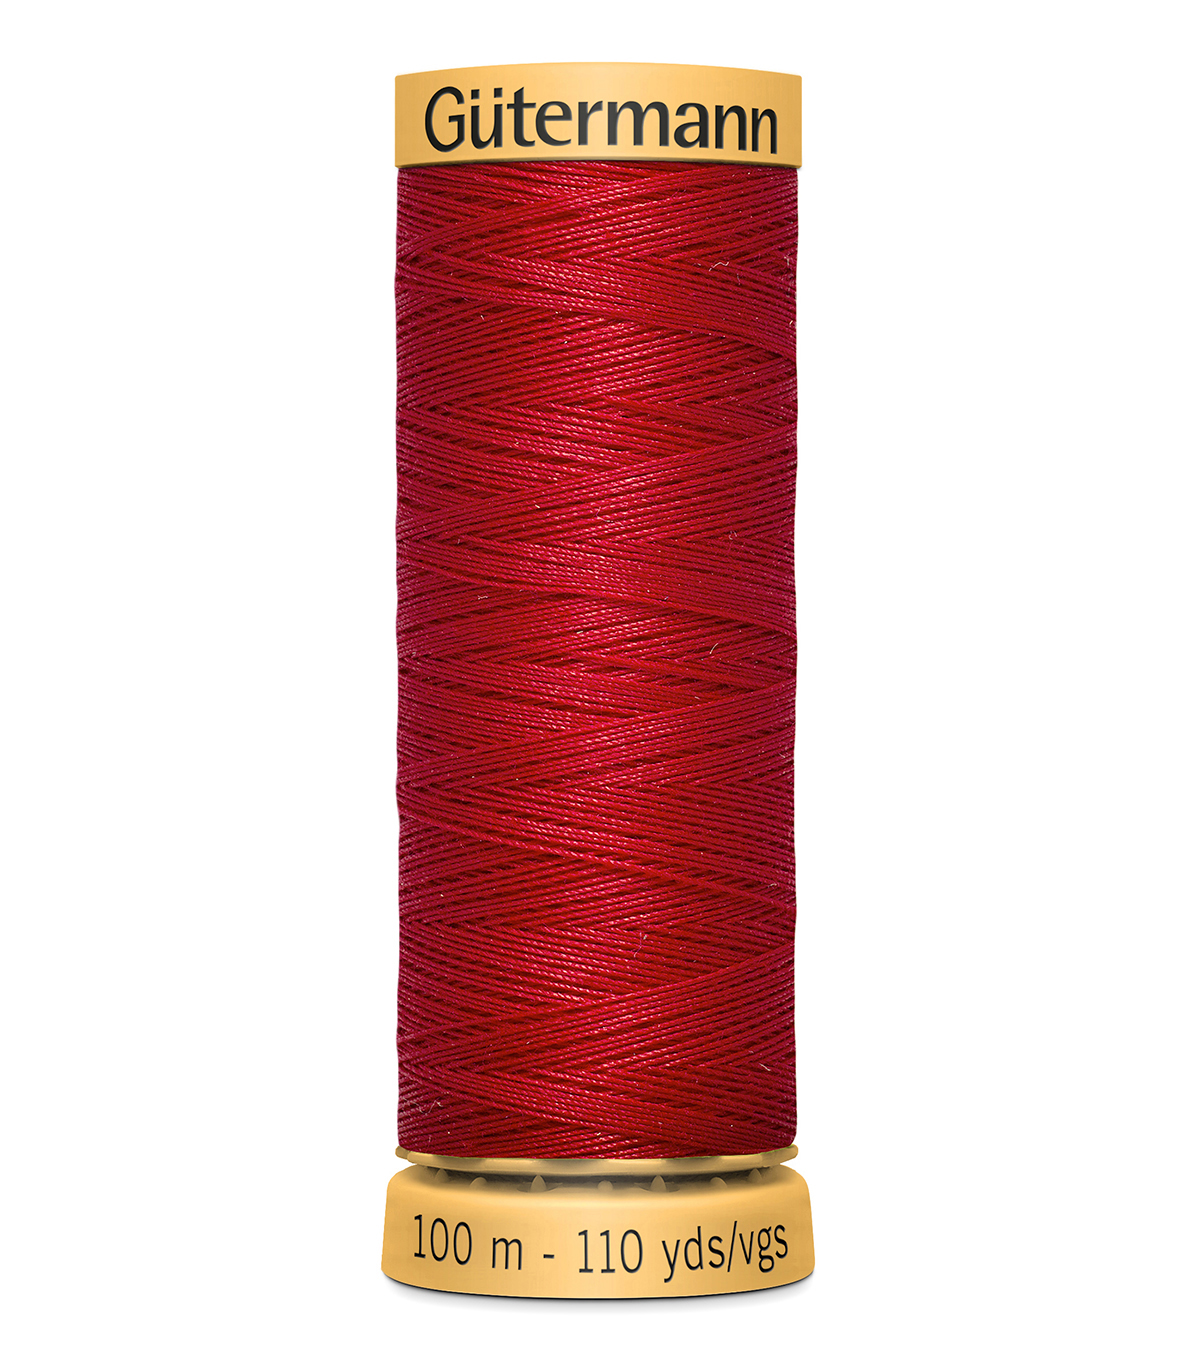 Gutermann Sew All Polyester Thread 110 Yards-Oranges & Yellows , Bright Red